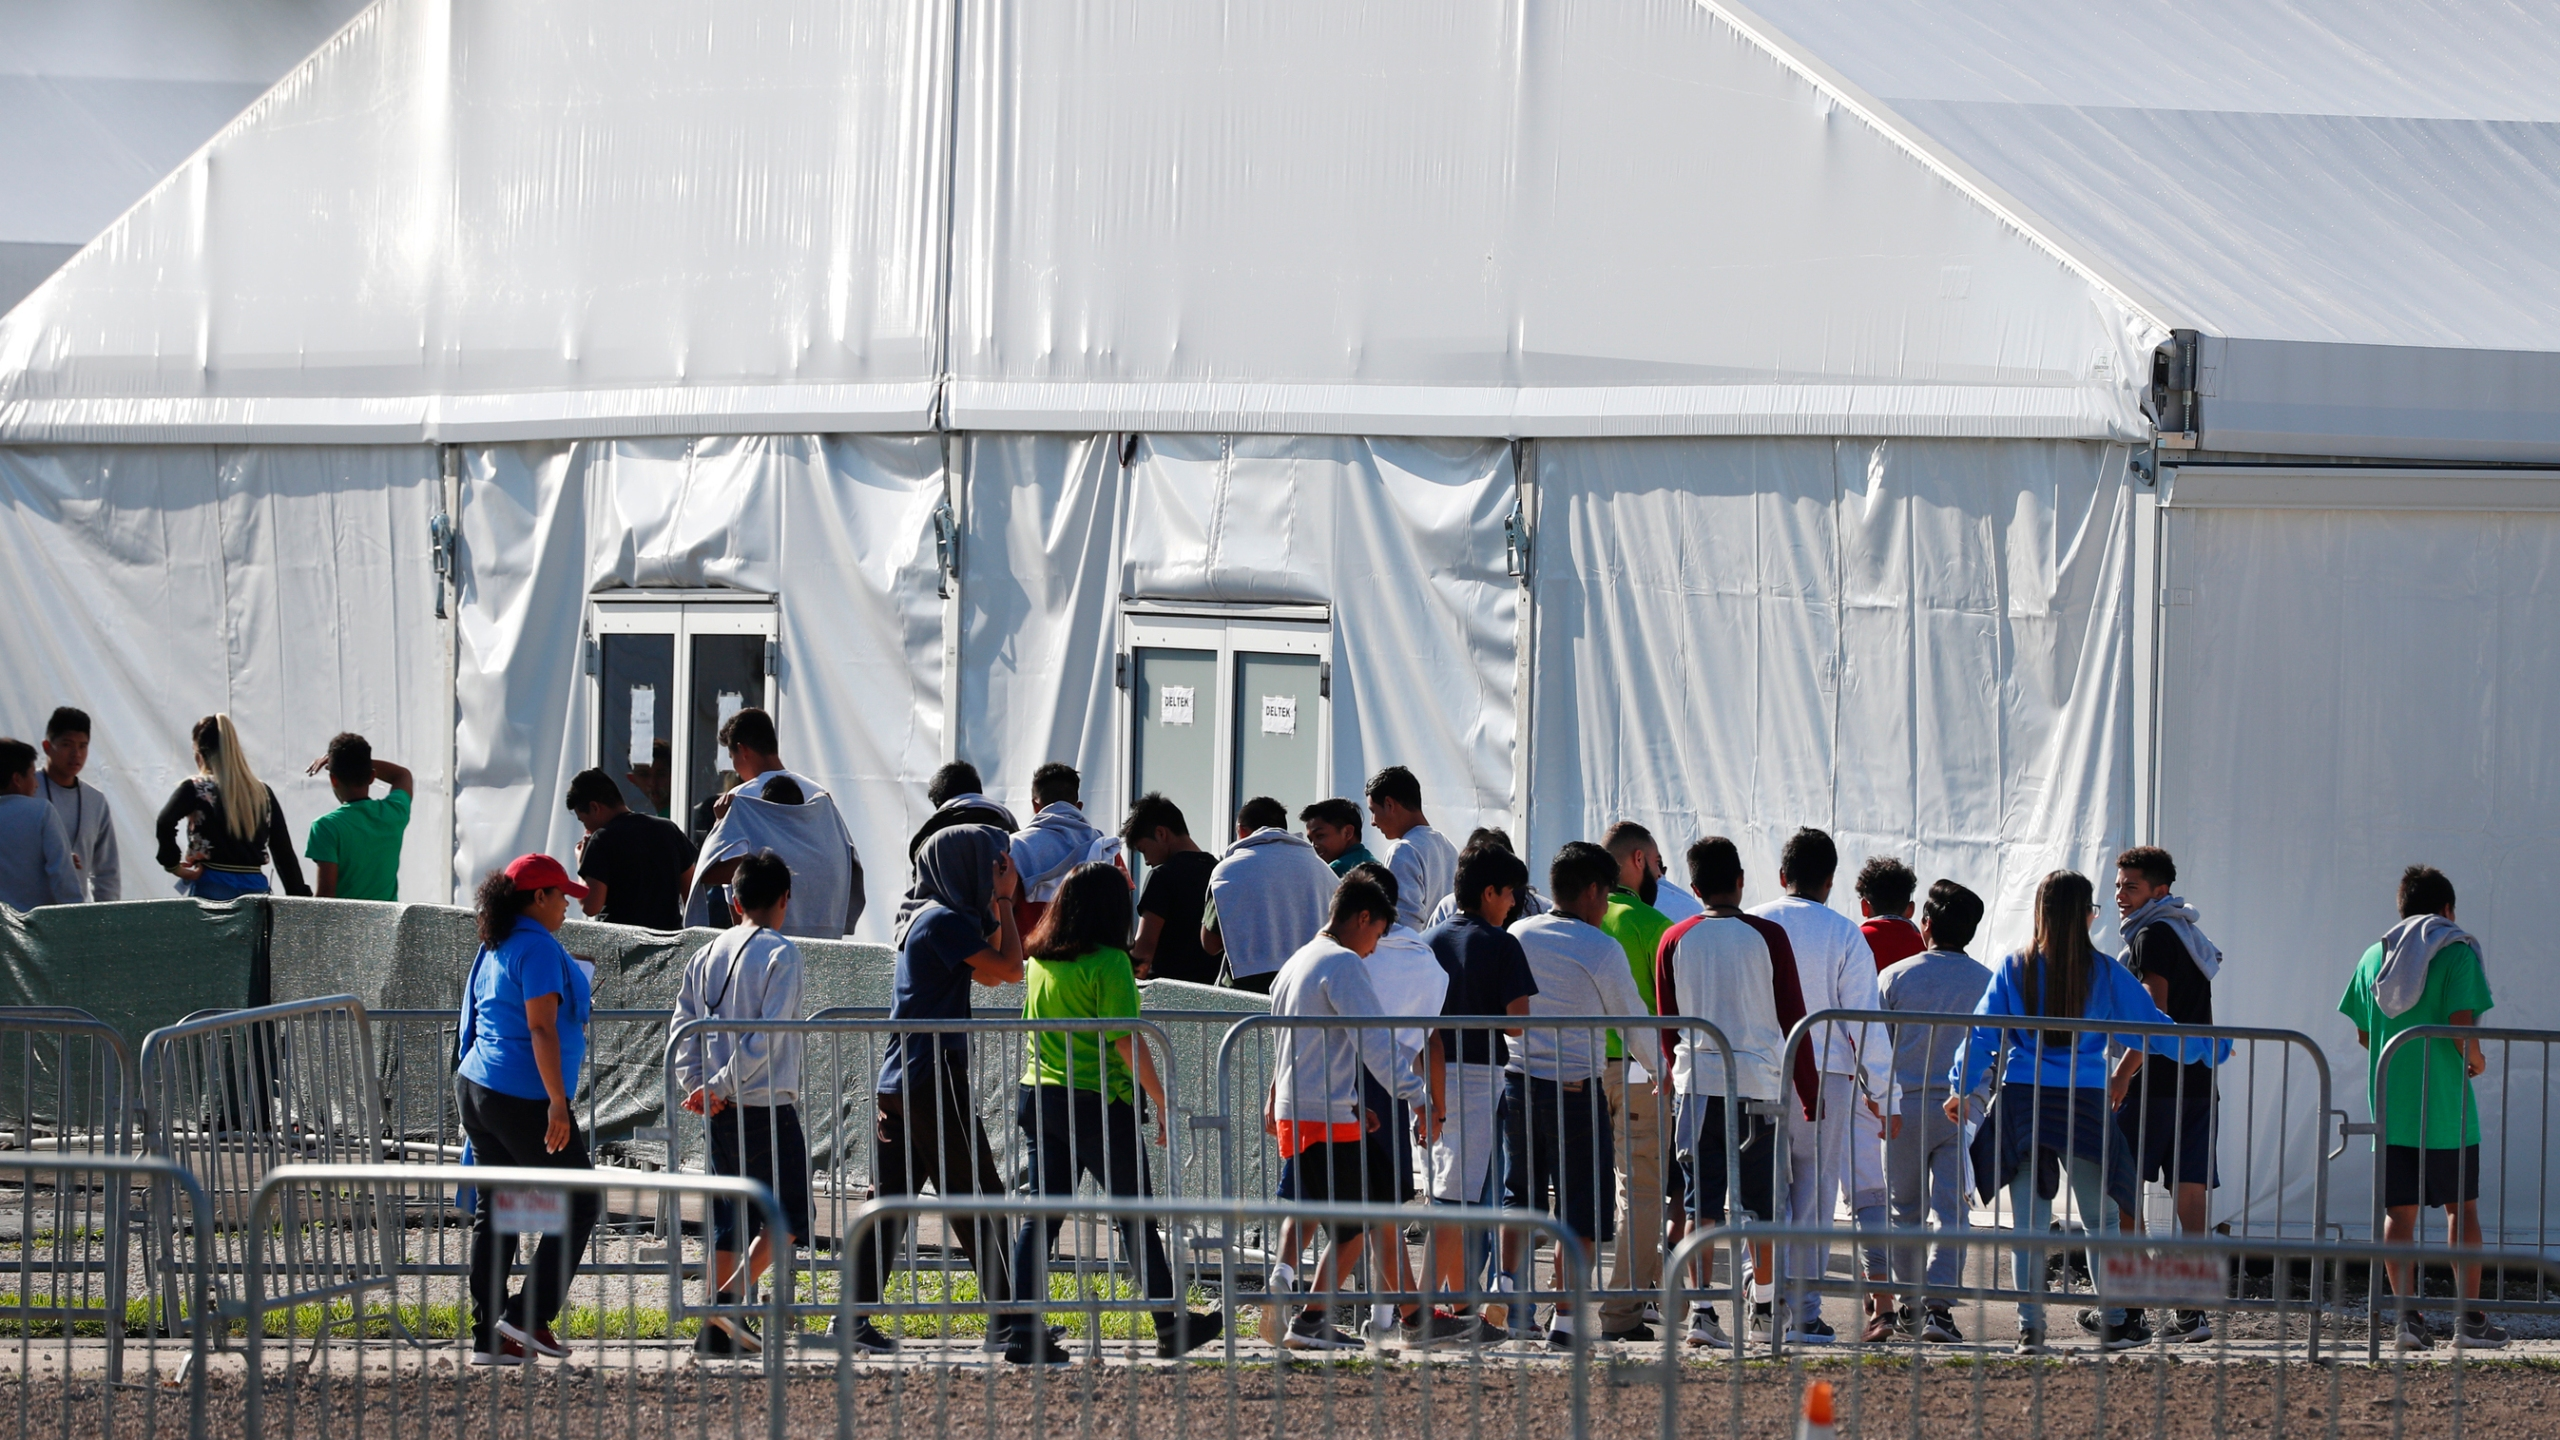 In this Feb. 19, 2019, file photo, children line up to enter a tent at the Homestead Temporary Shelter for Unaccompanied Children in Homestead, Fla. (Wilfredo Lee/Associated Press)